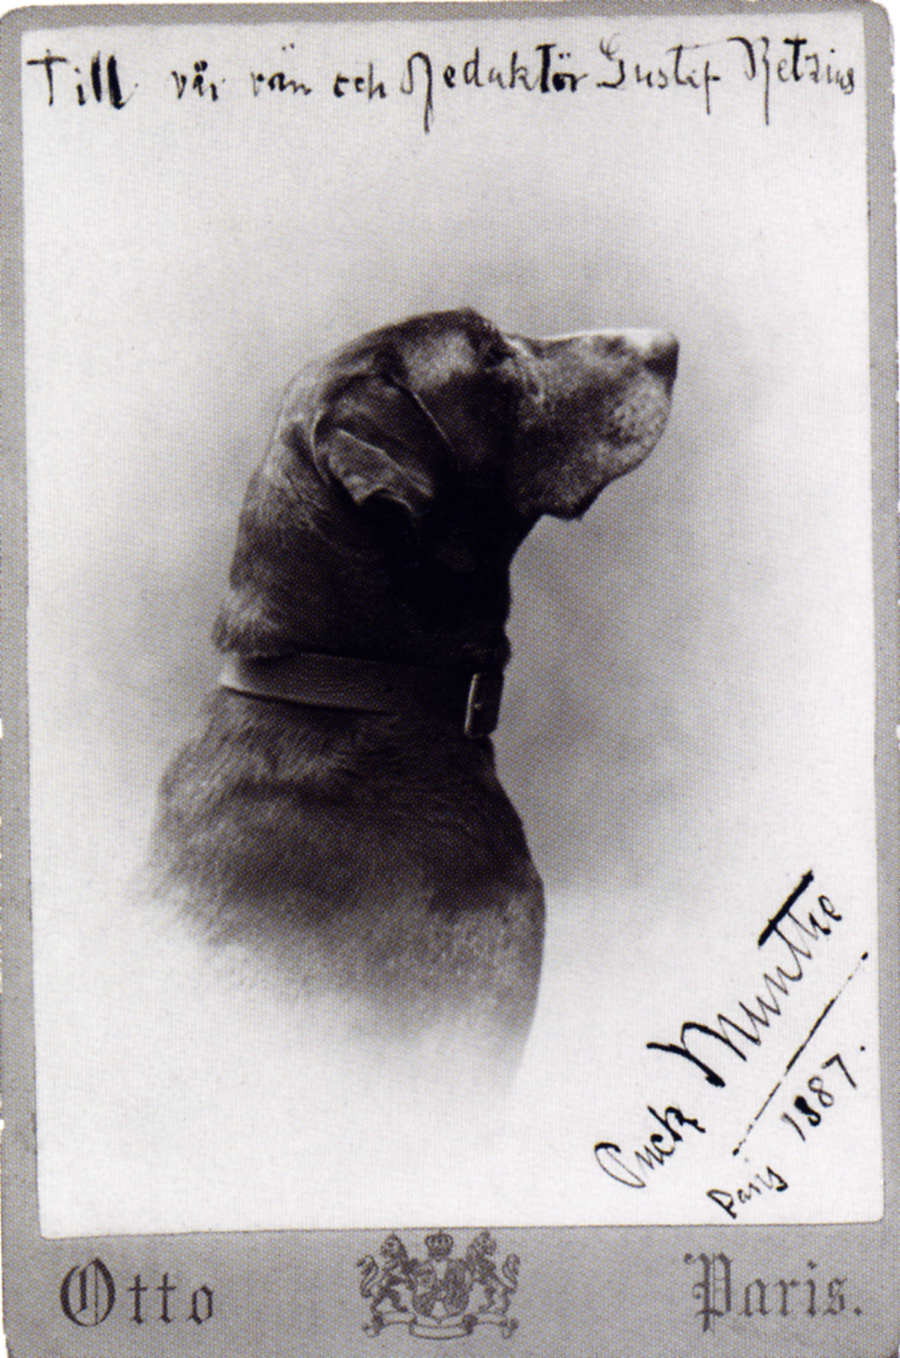 Axel Munthe's dog Puck. Munthe used his name as a pseudonym